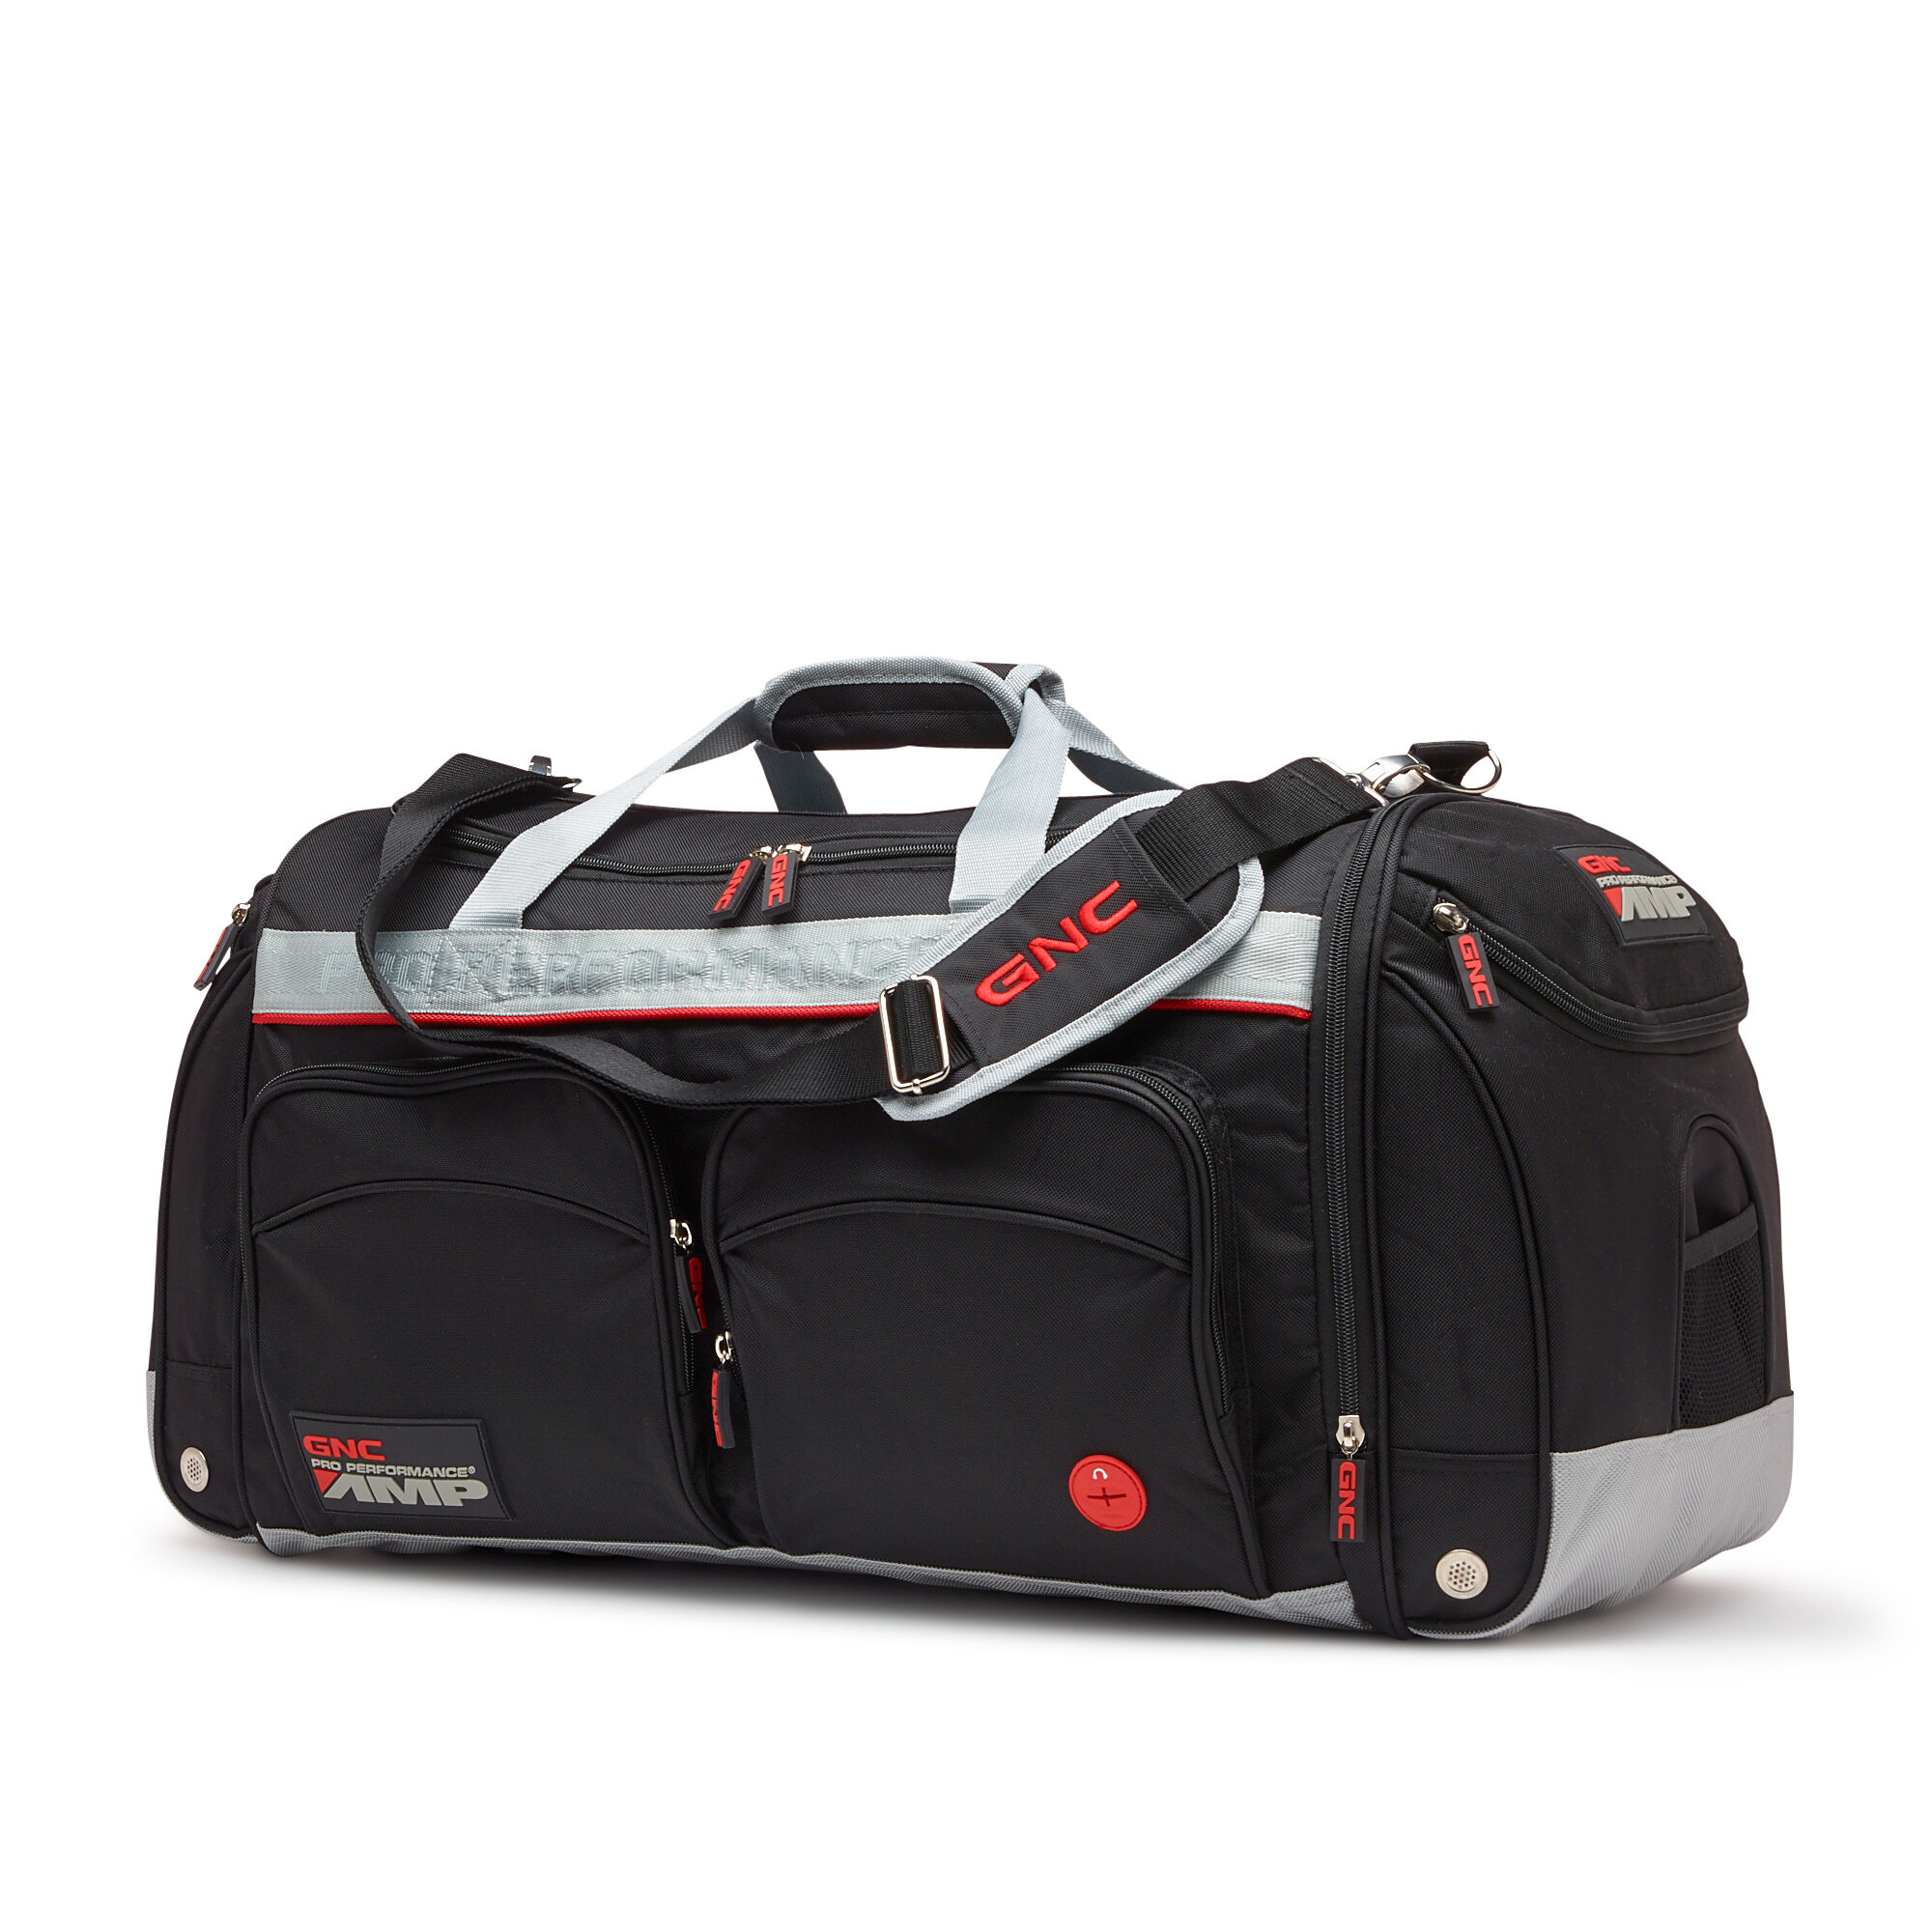 26f52fea96 AMP Ultra Gym Bag - Holds Shoes